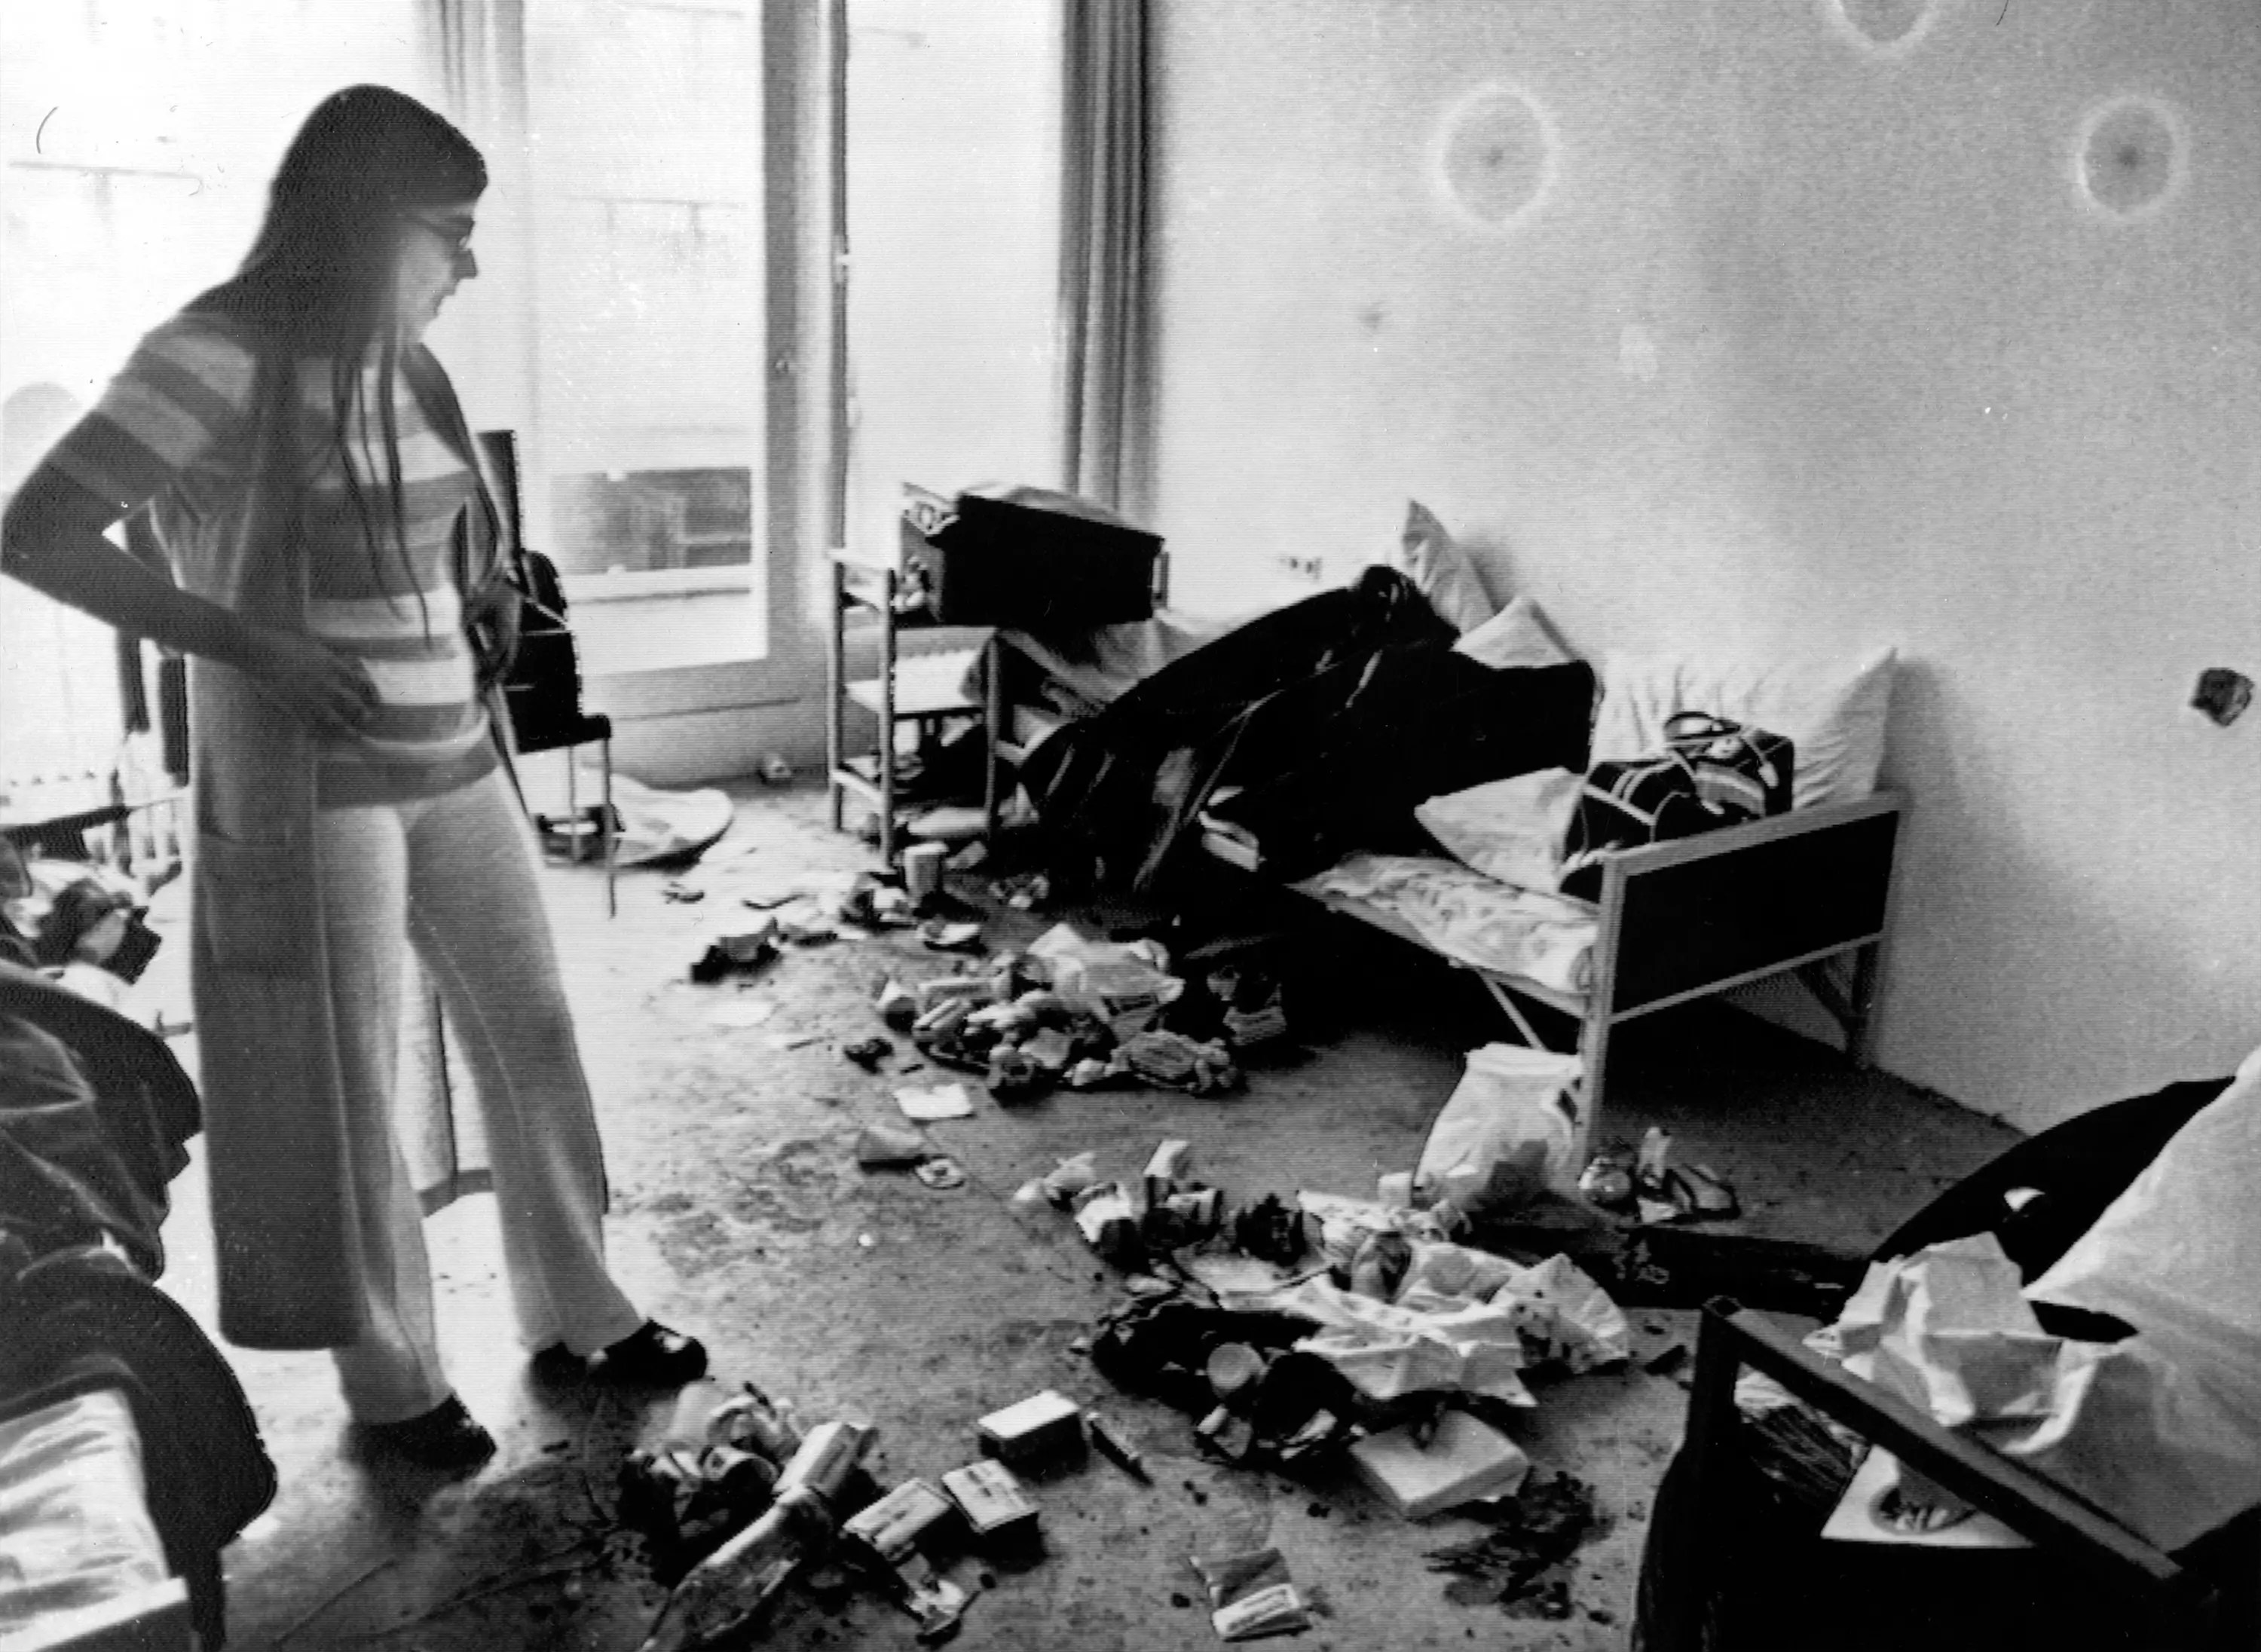 Munich, 1972: The games of 1972 had a dark shadow cast over them after 11 Israeli athletes were murdered in their accommodation by Palestinian terrorists. This photo shows Ankie Spitzer, widow of the Israeli fencing coach, Andre Spitzer, surveying the room where the incident occurred at Munich's Olympic Village. Chalk circles outline bullet holes in the wall.